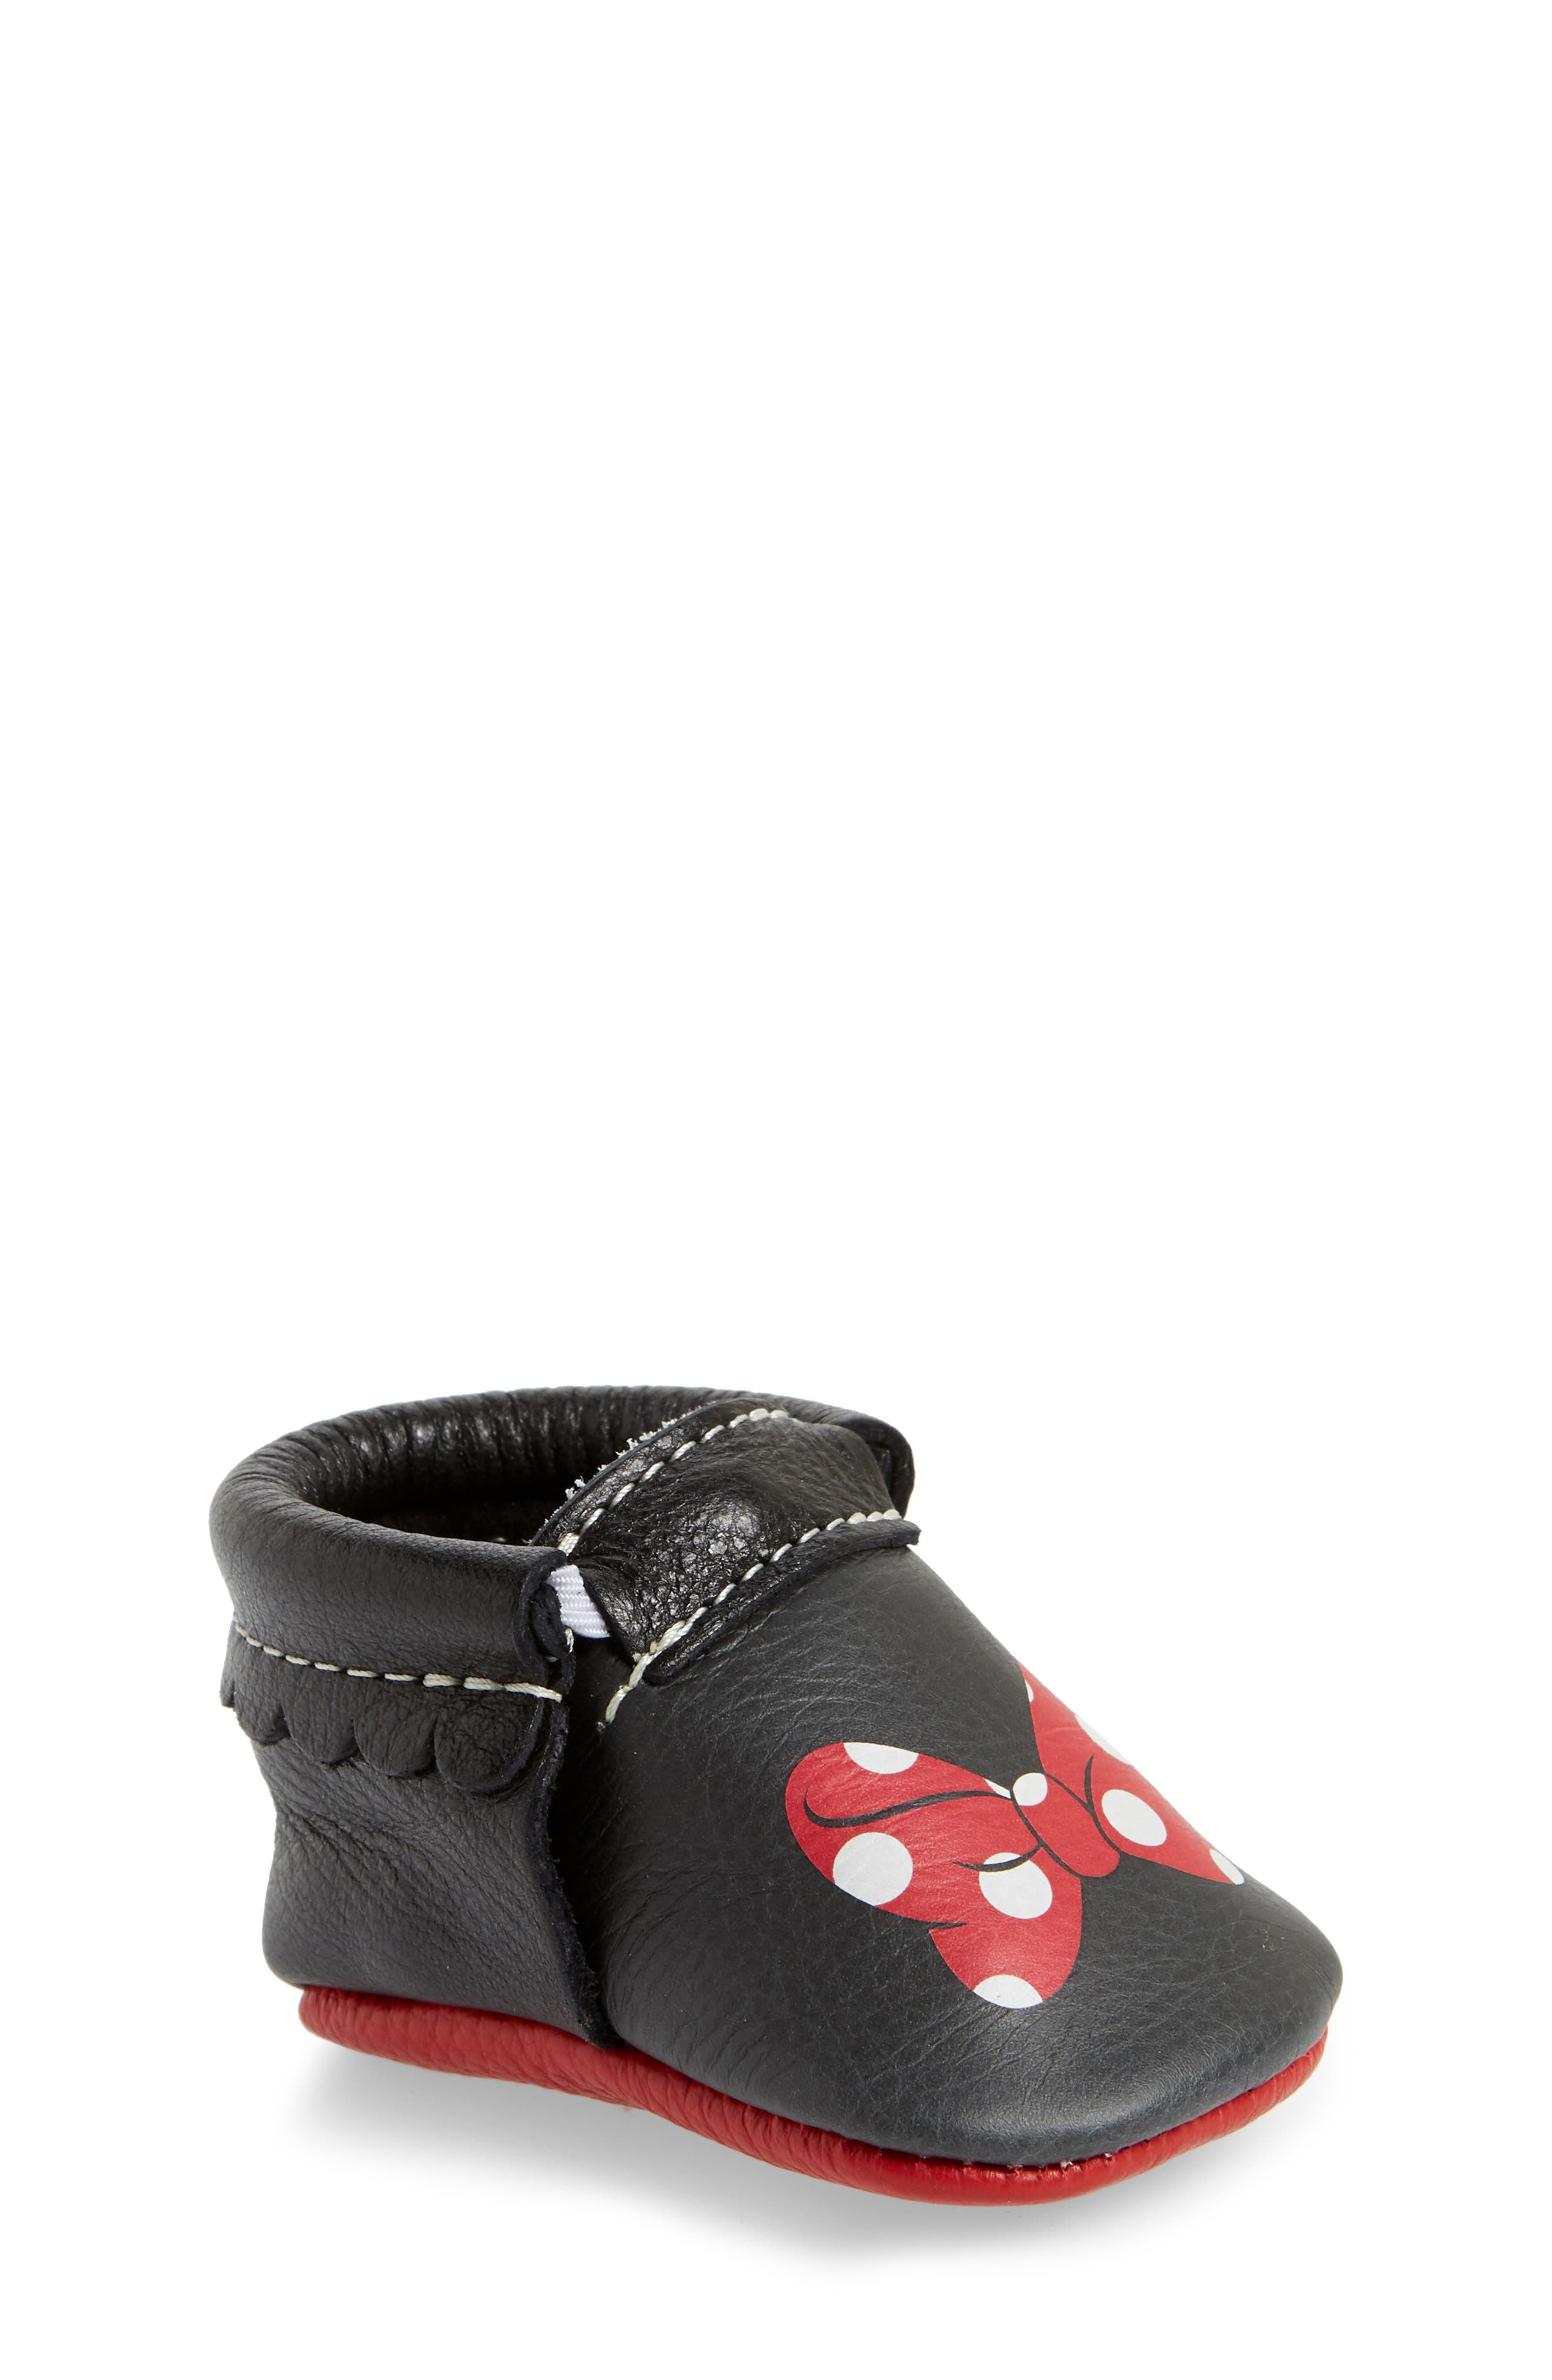 x Disney<sup>®</sup> Baby Minnie Mouse Crib Moccasin,                             Main thumbnail 1, color,                             Black Leather